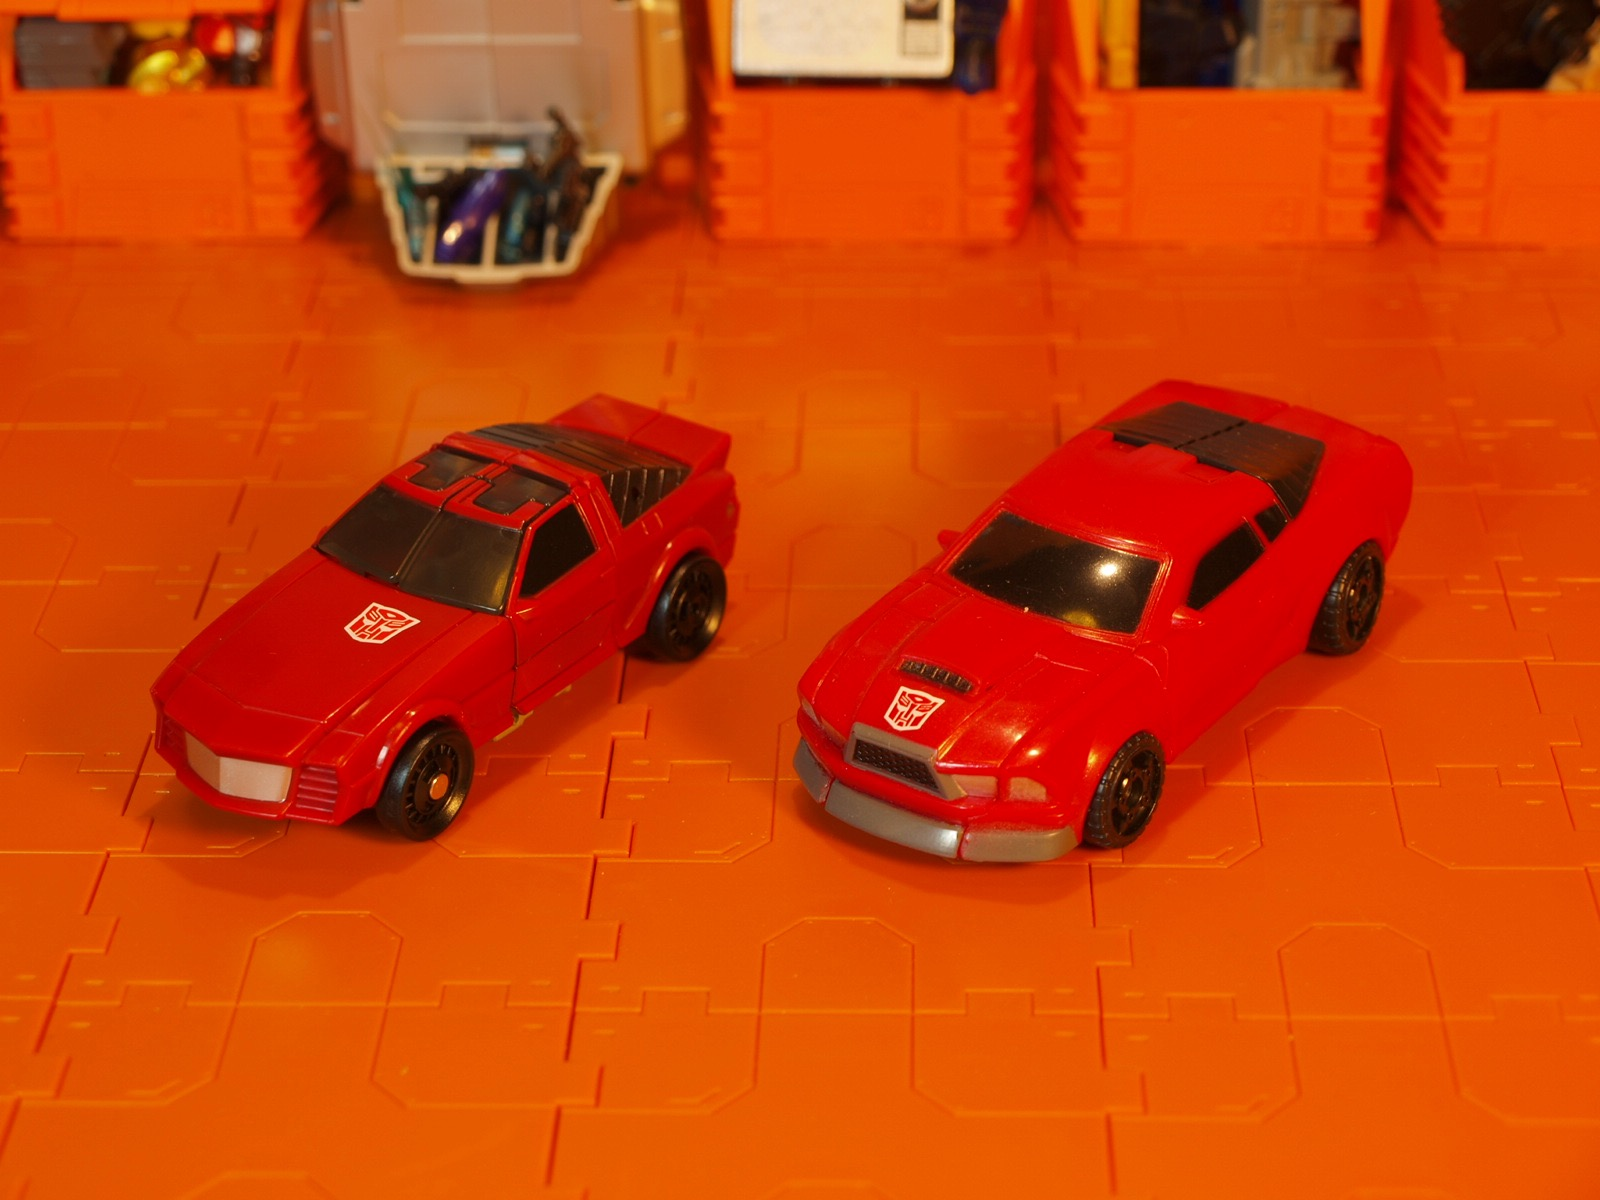 Windcharger comparison vehicle mode